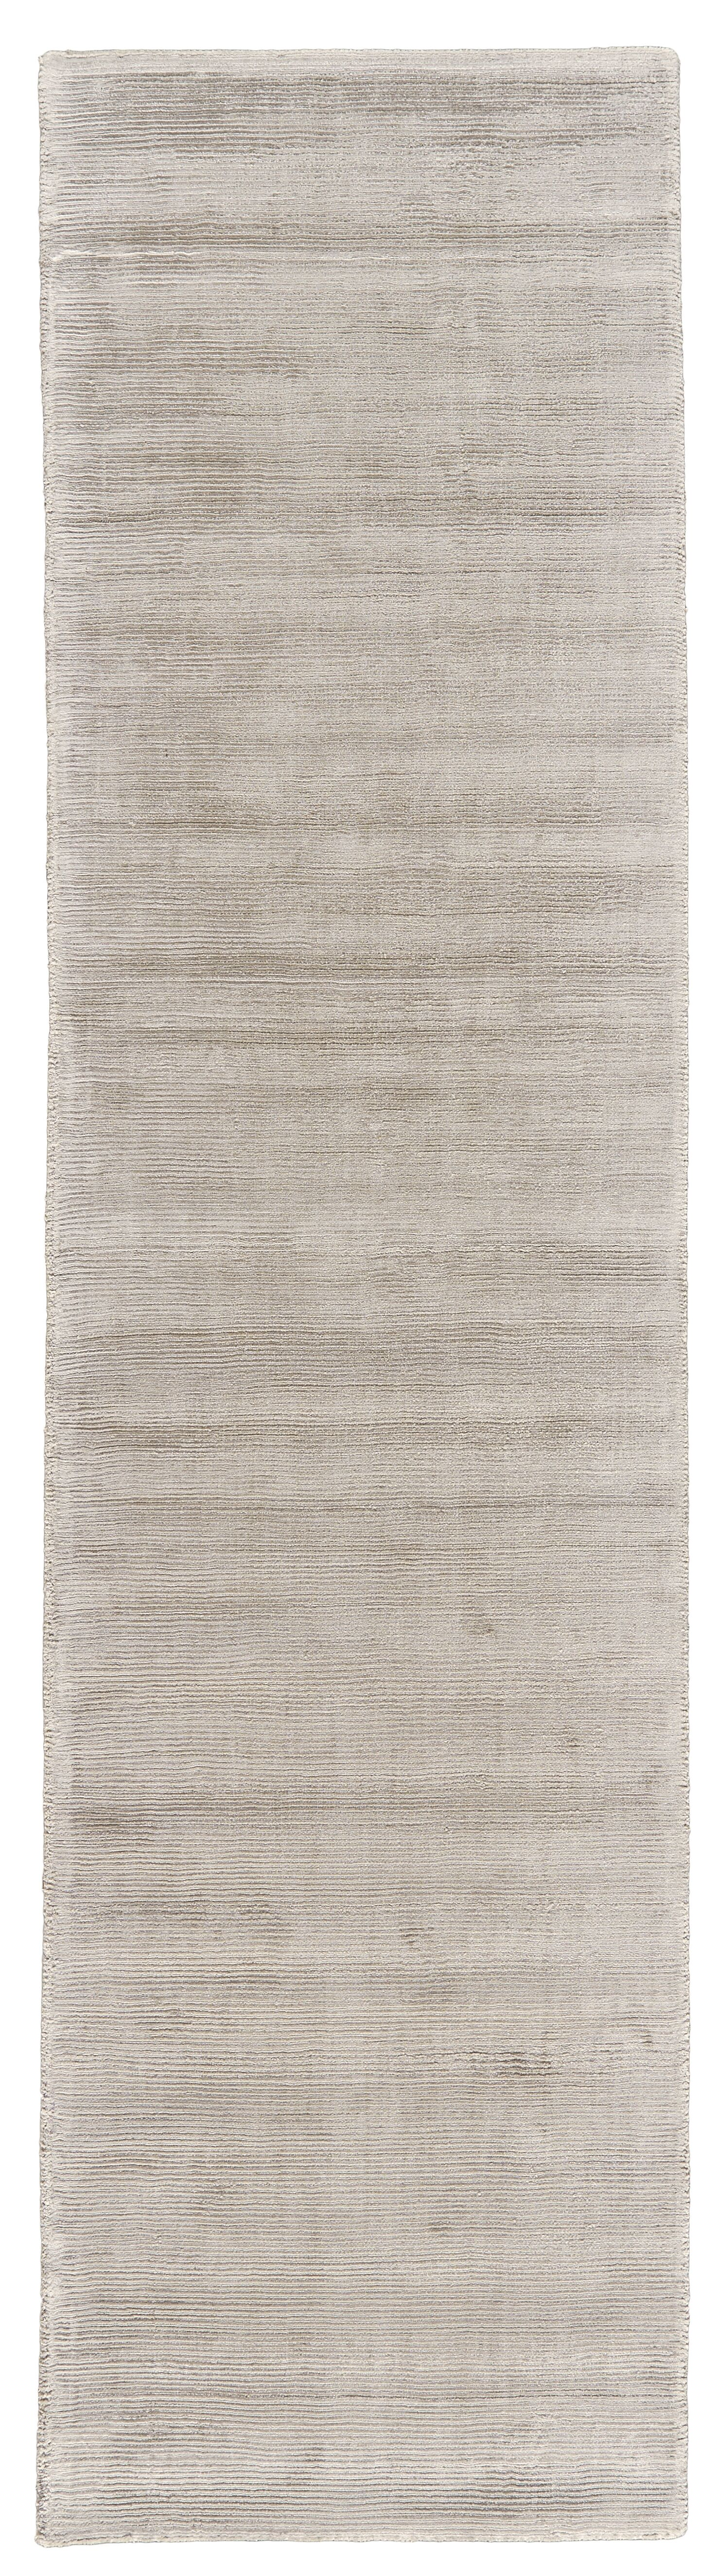 Riaria Hand-Woven Taupe Area Rug Rug Size: Runner 2'6